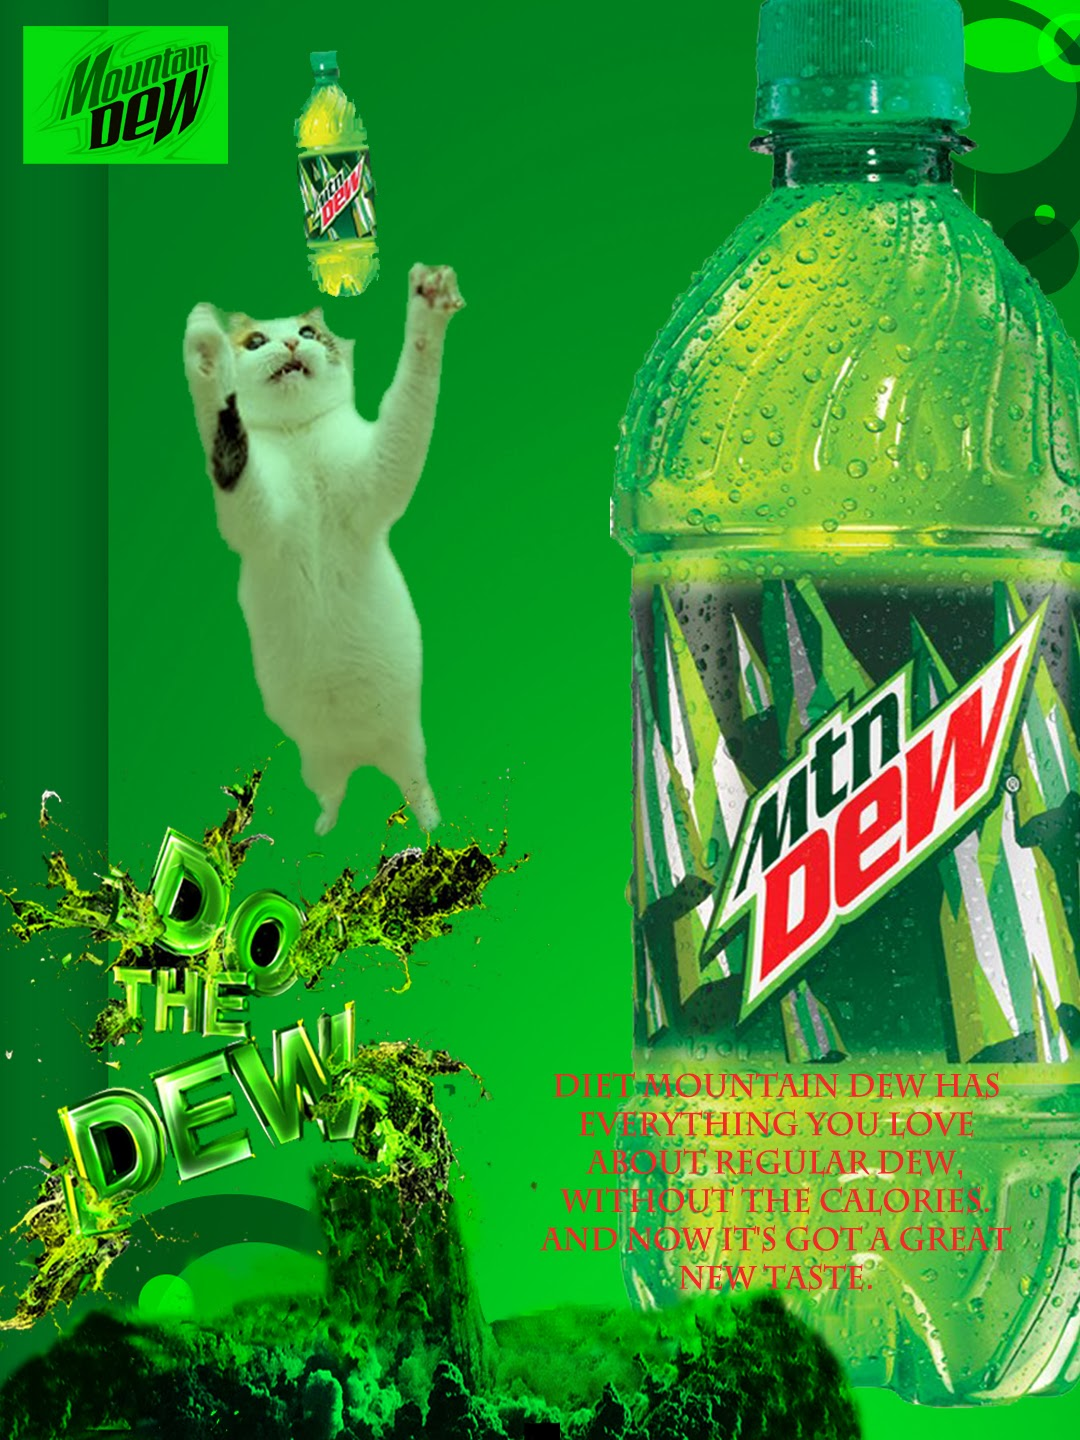 quiz 5 mountain dew 11 energizing facts about mountain dew according to dick bridgforth's mountain dew: the best strategy for guessing on a multiple-choice quiz.